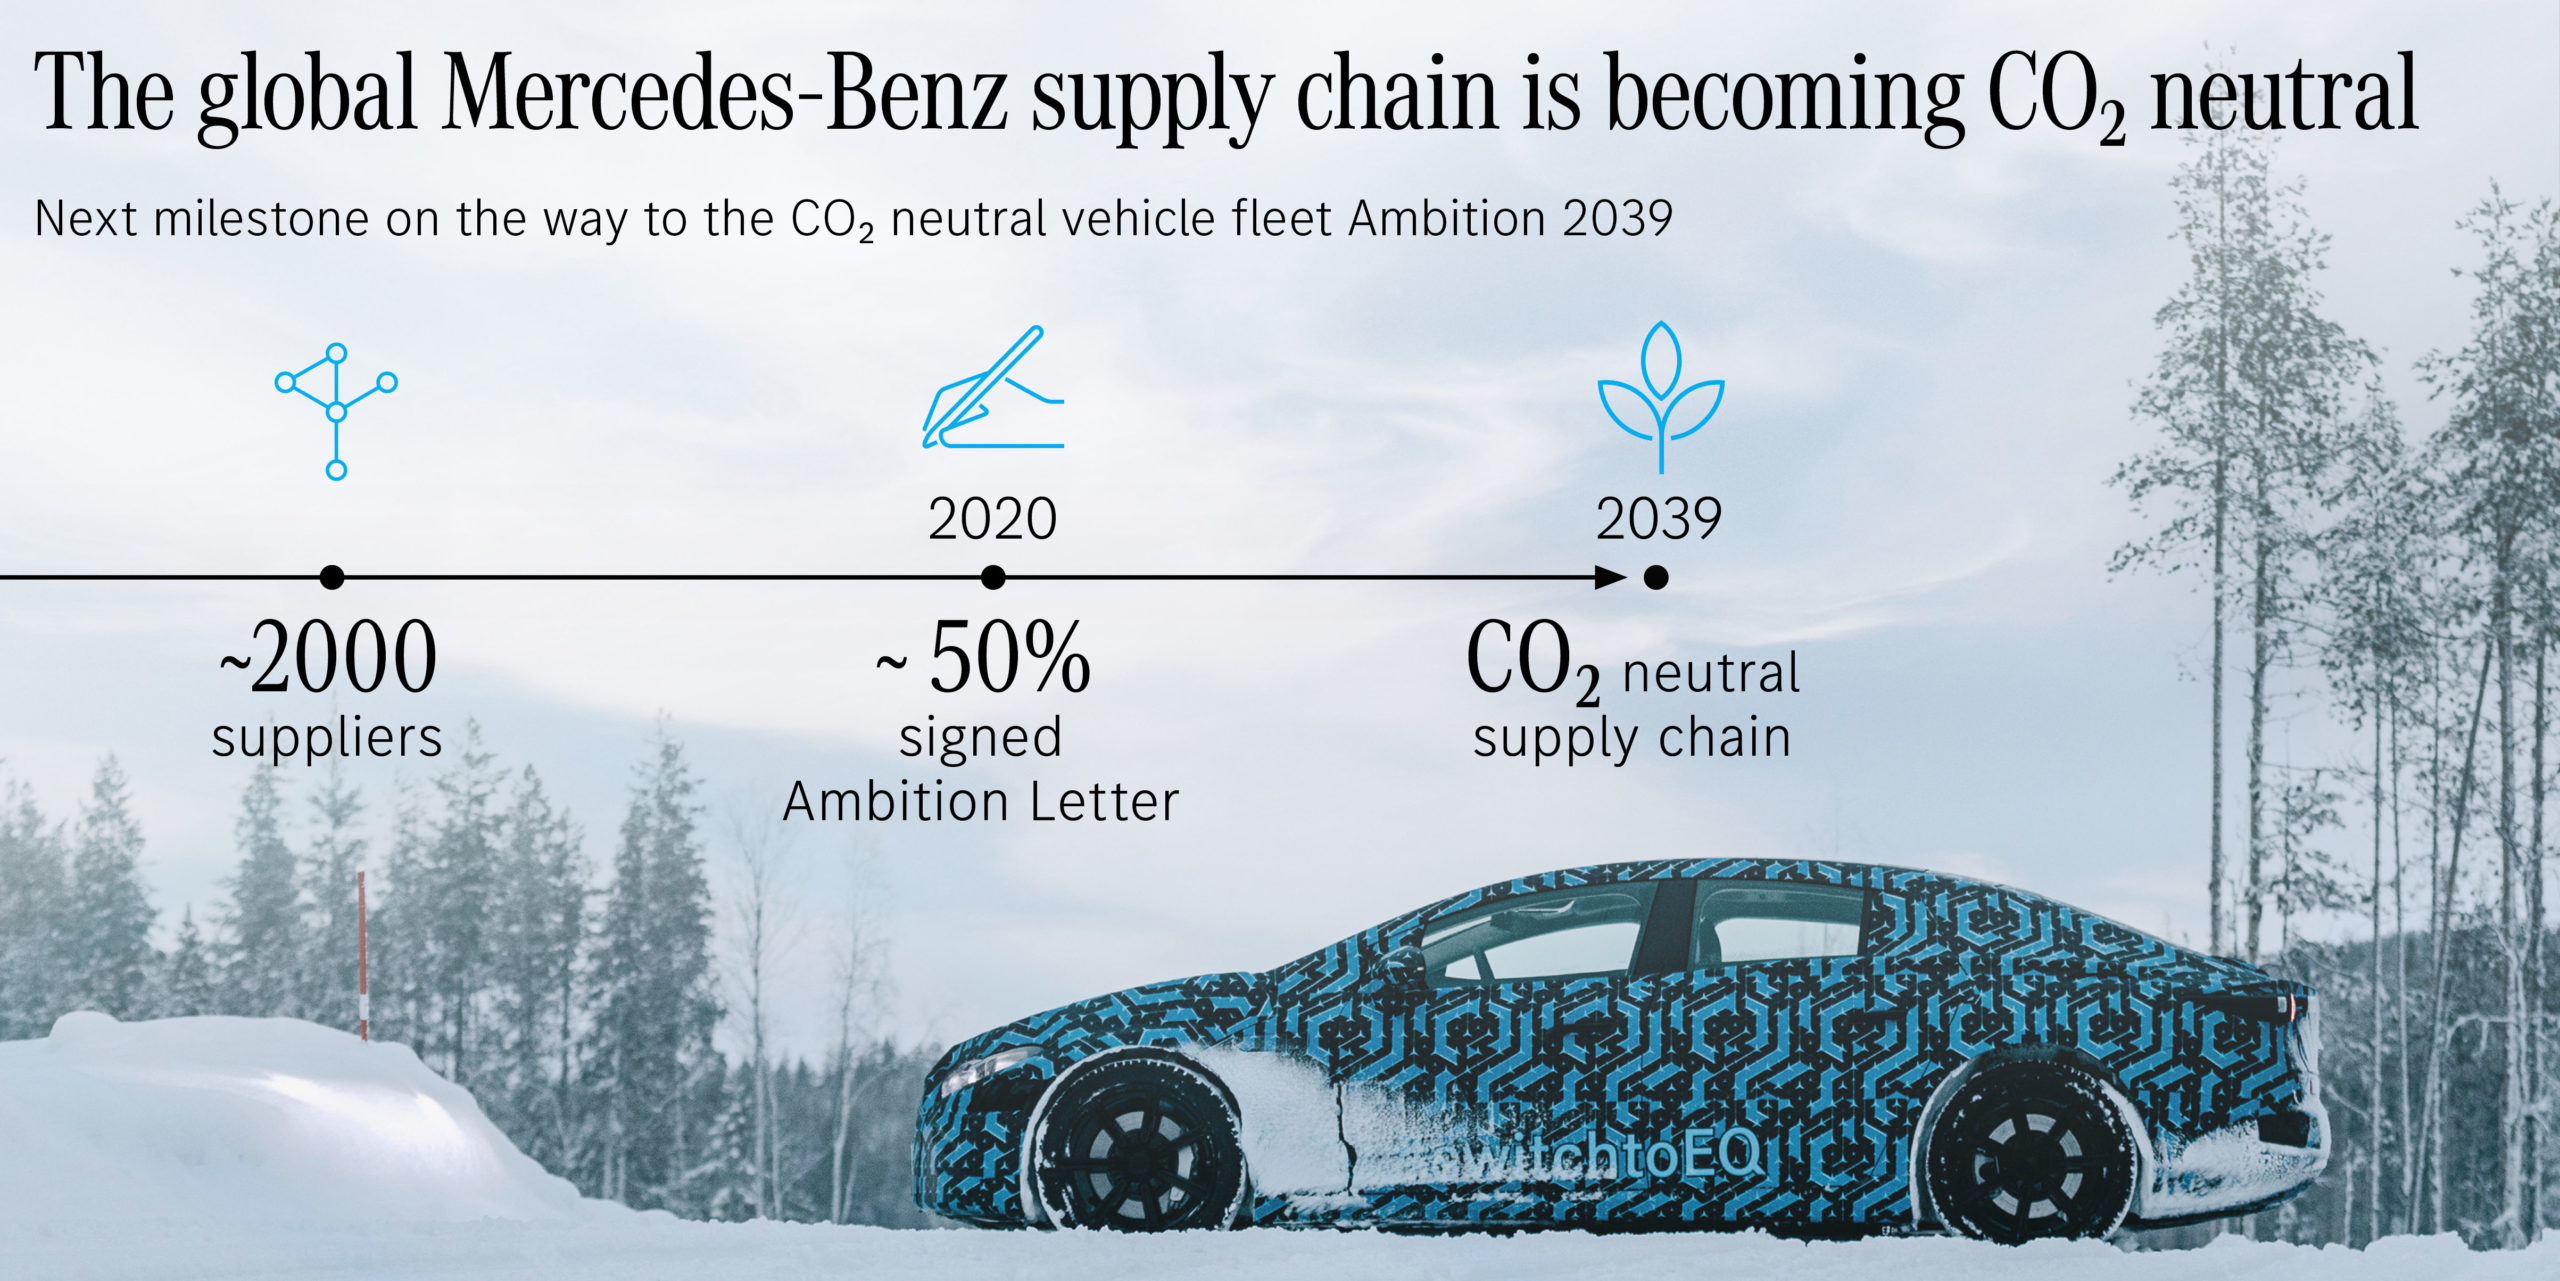 Ambition 2039 by Mercedes-Benz